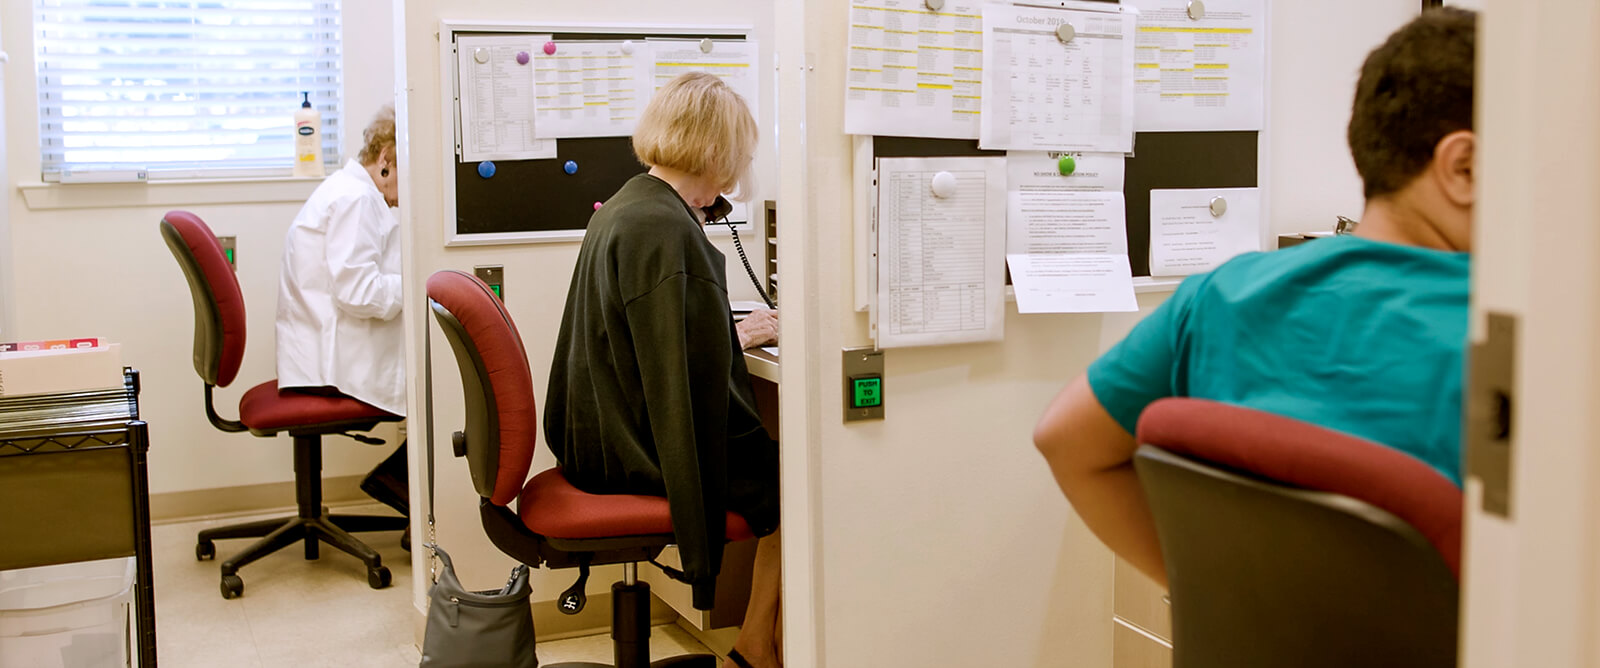 Photo: Three Clinic volunteers working in the phone cubicles at Clinic's scheduling area